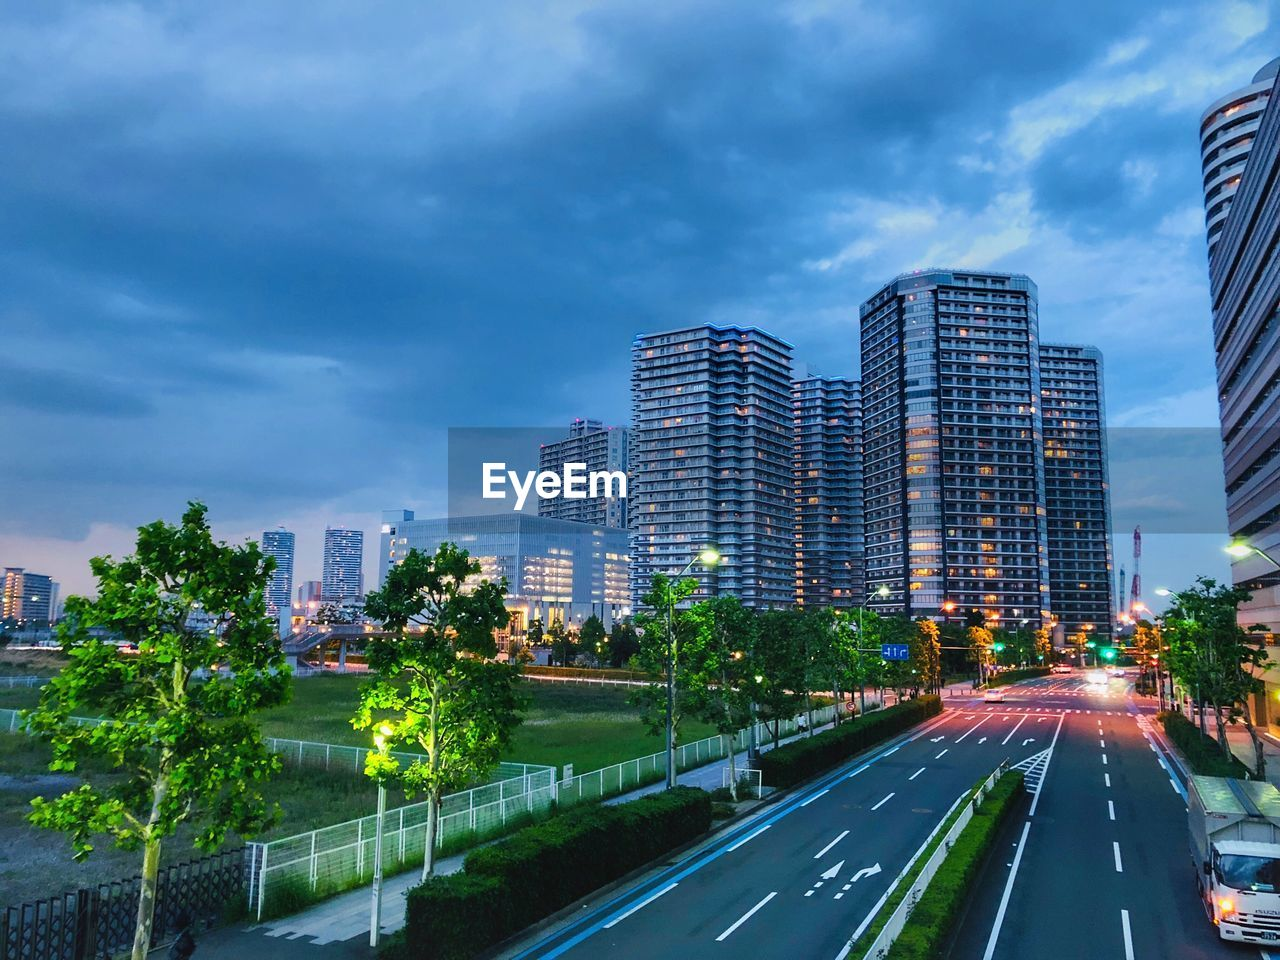 city, architecture, sky, built structure, building exterior, cloud - sky, transportation, building, road, nature, plant, tree, office building exterior, modern, no people, city life, illuminated, skyscraper, cityscape, sign, outdoors